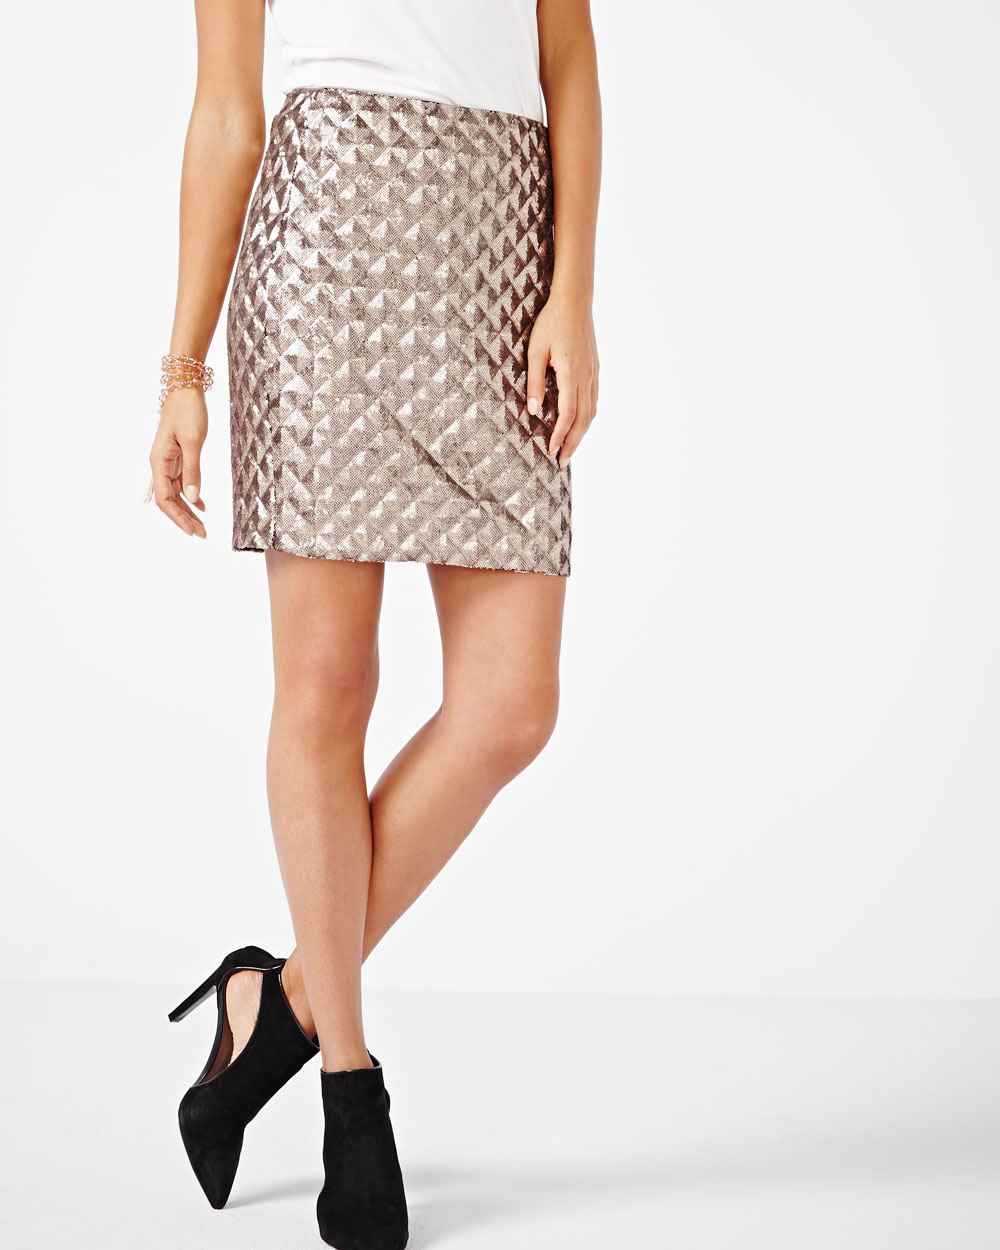 Short sequins skirt | RW&CO.